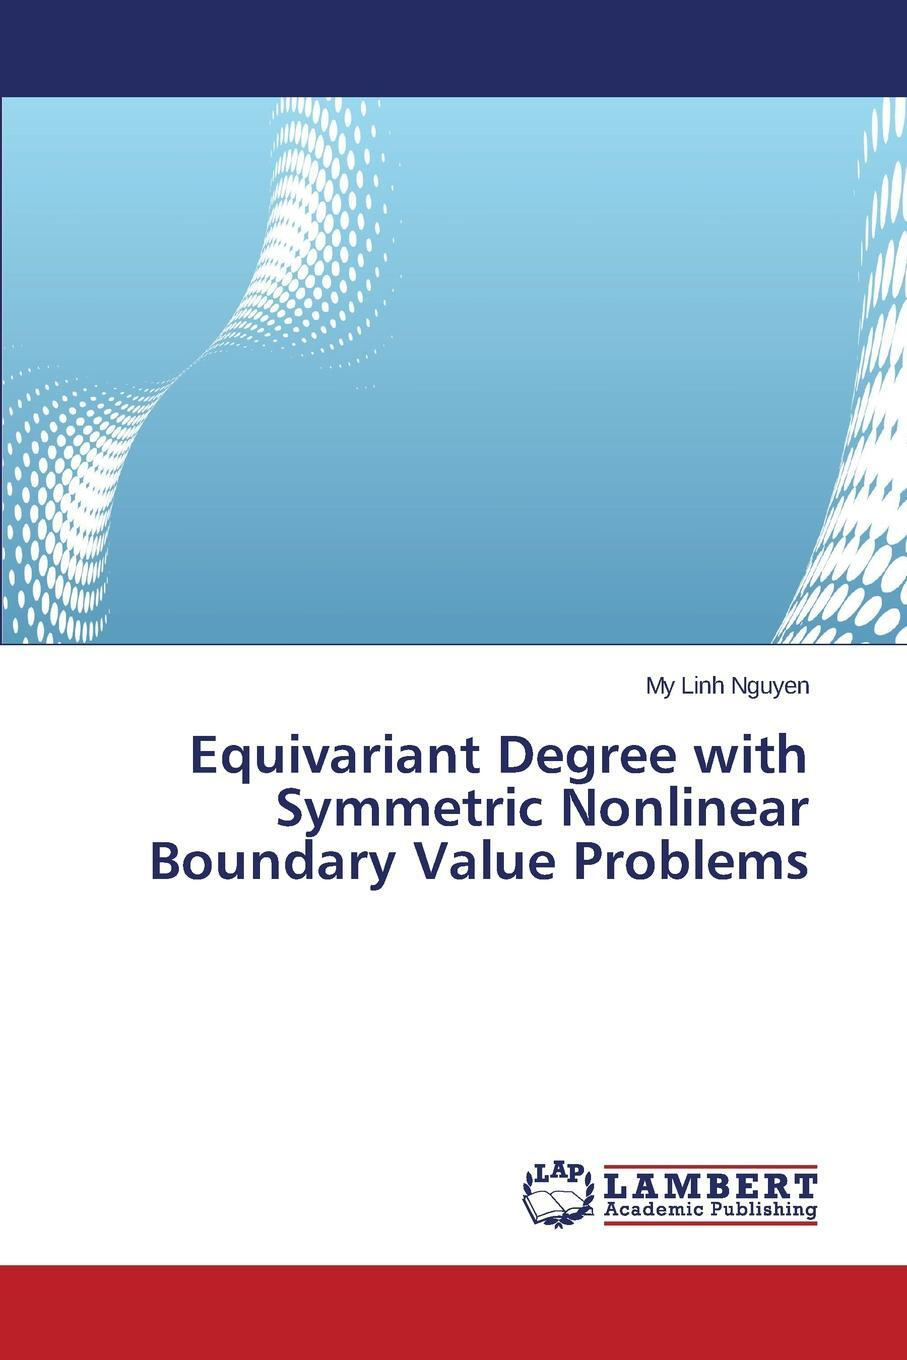 Equivariant Degree with Symmetric Nonlinear Boundary Value Problems